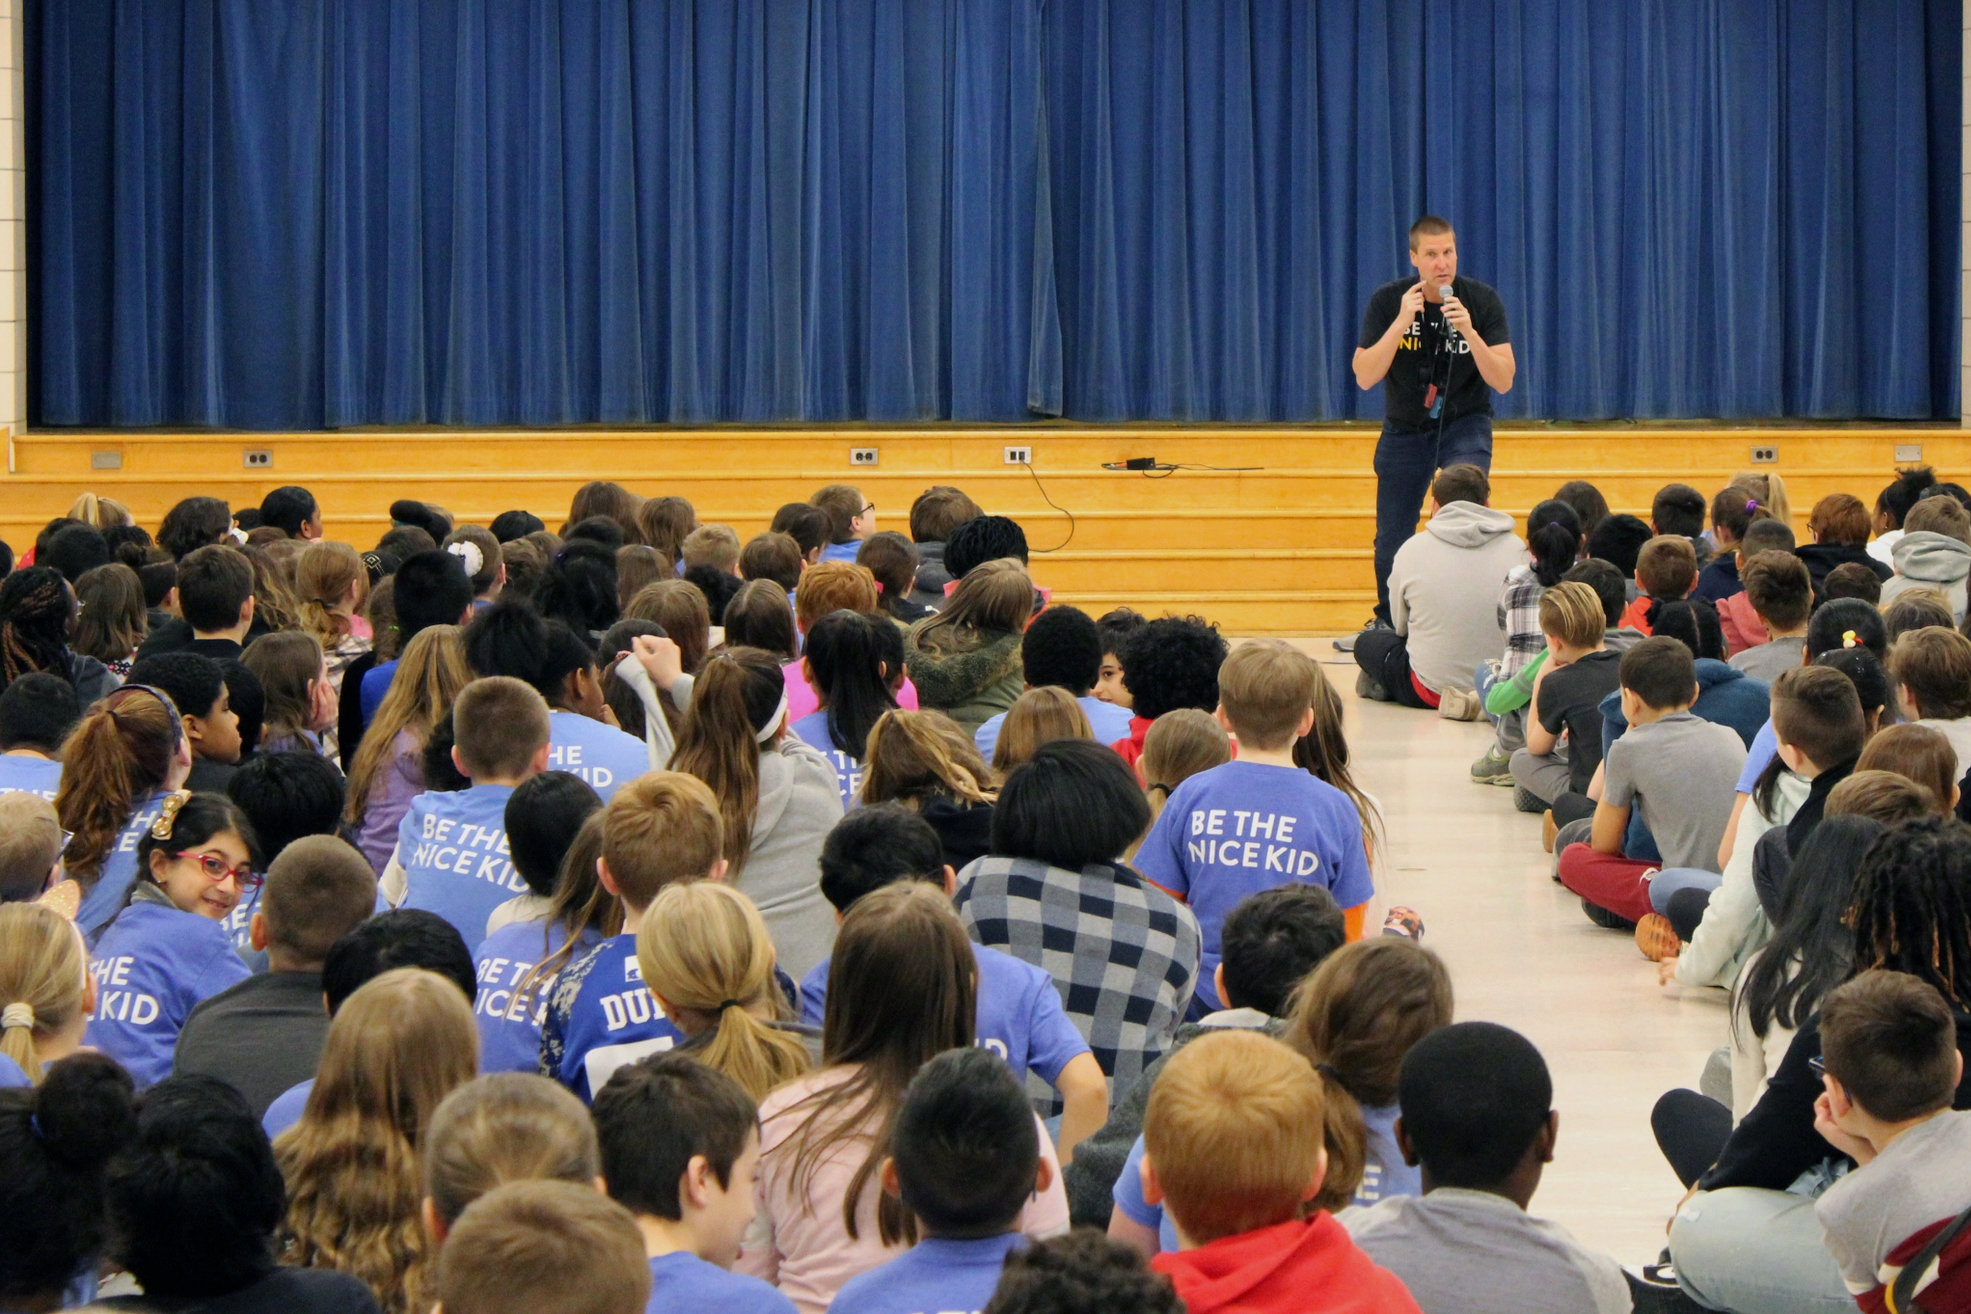 Assemblies - Inspirational, motivational, and a lot of fun. Bryan brings his humor to the whole school and engages the kids in a 40-45 minute fast-paced, interactive, story-filled performance.